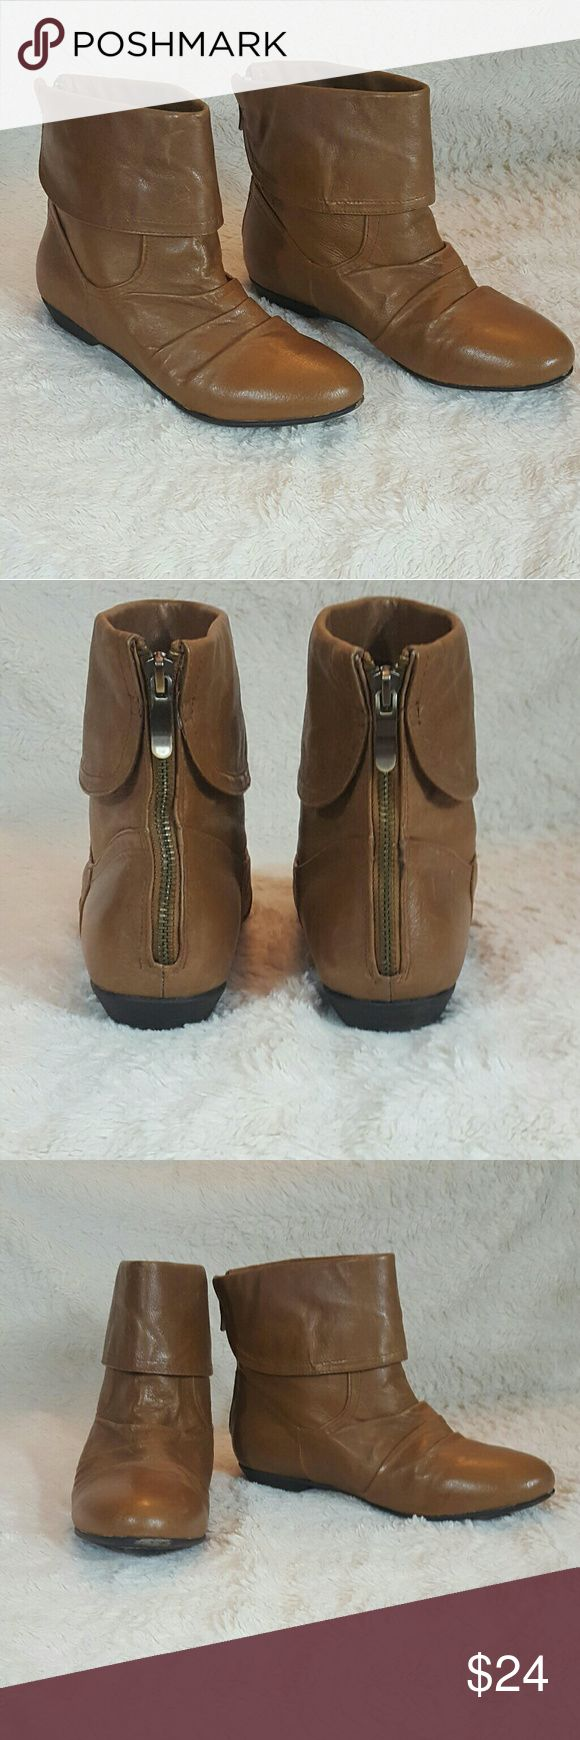 Chinese Laundry Tan Leather Ankle Boots Tan gently used Chinese Laundry ankle boots in great condition.  - Size 8 - Style Z New Life - Leather - Silver zippers on heel - tags on bottom Chinese Laundry Shoes Heeled Boots